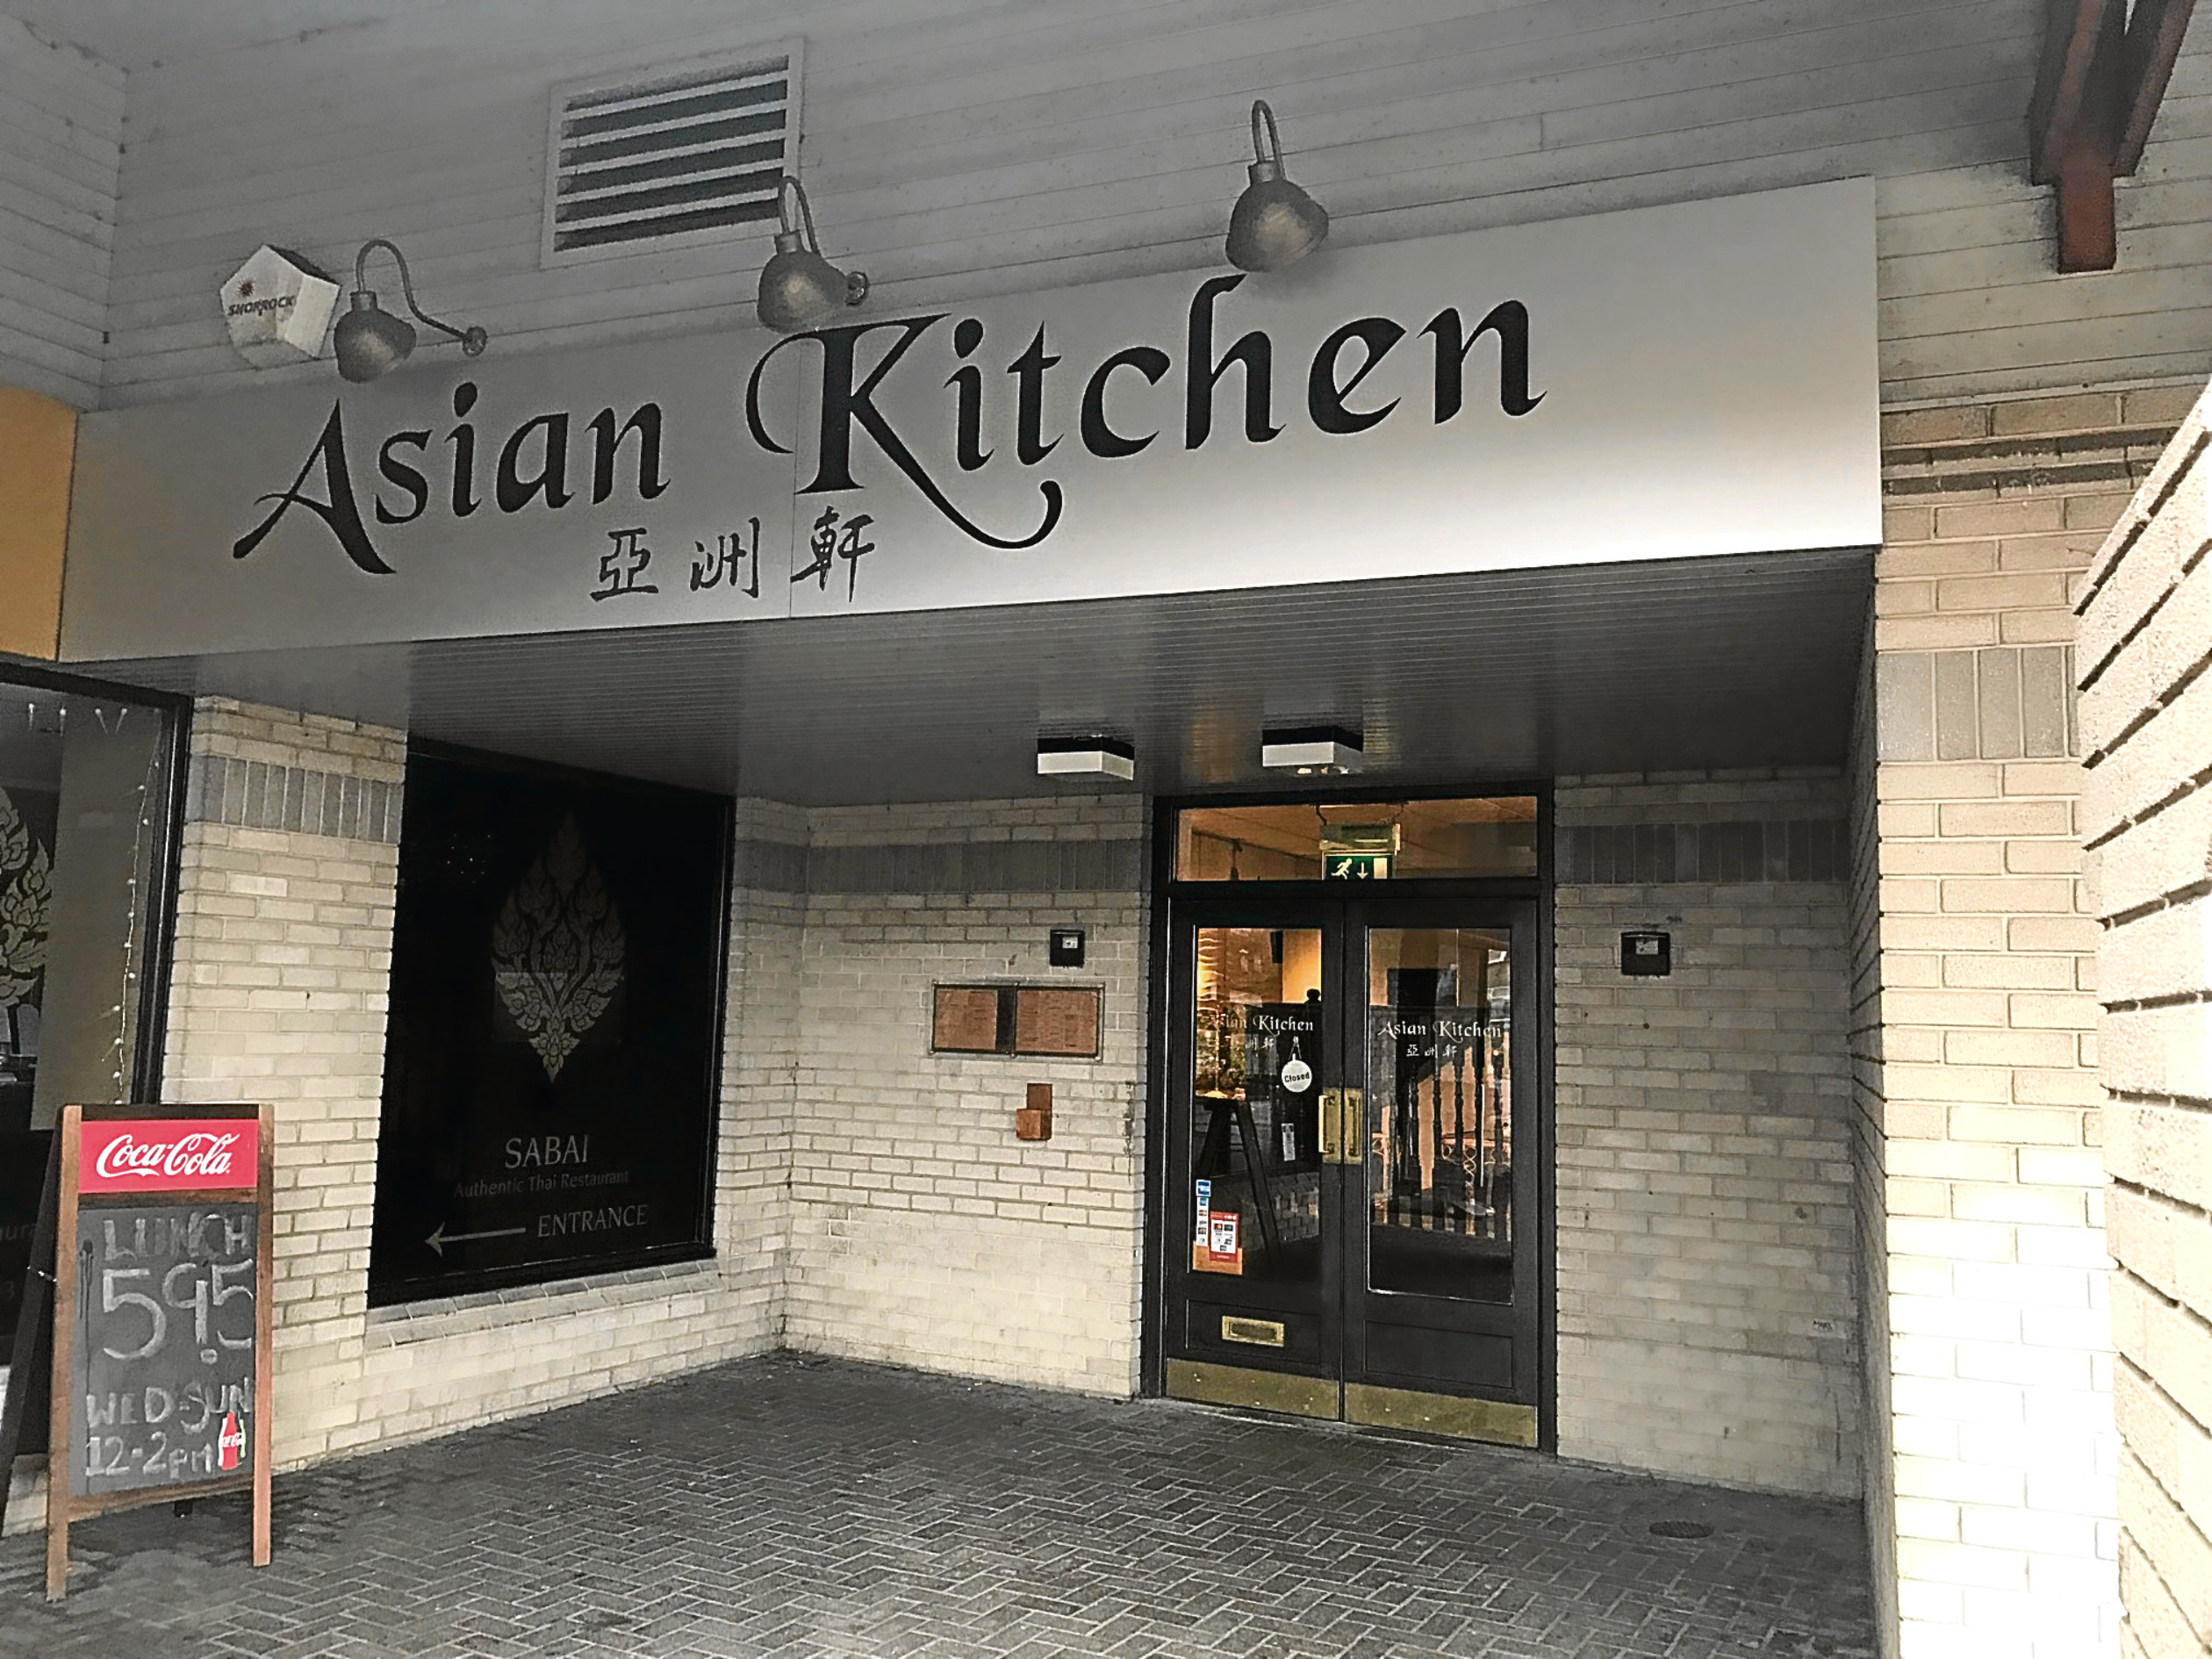 Asian Kitchen in Inverurie